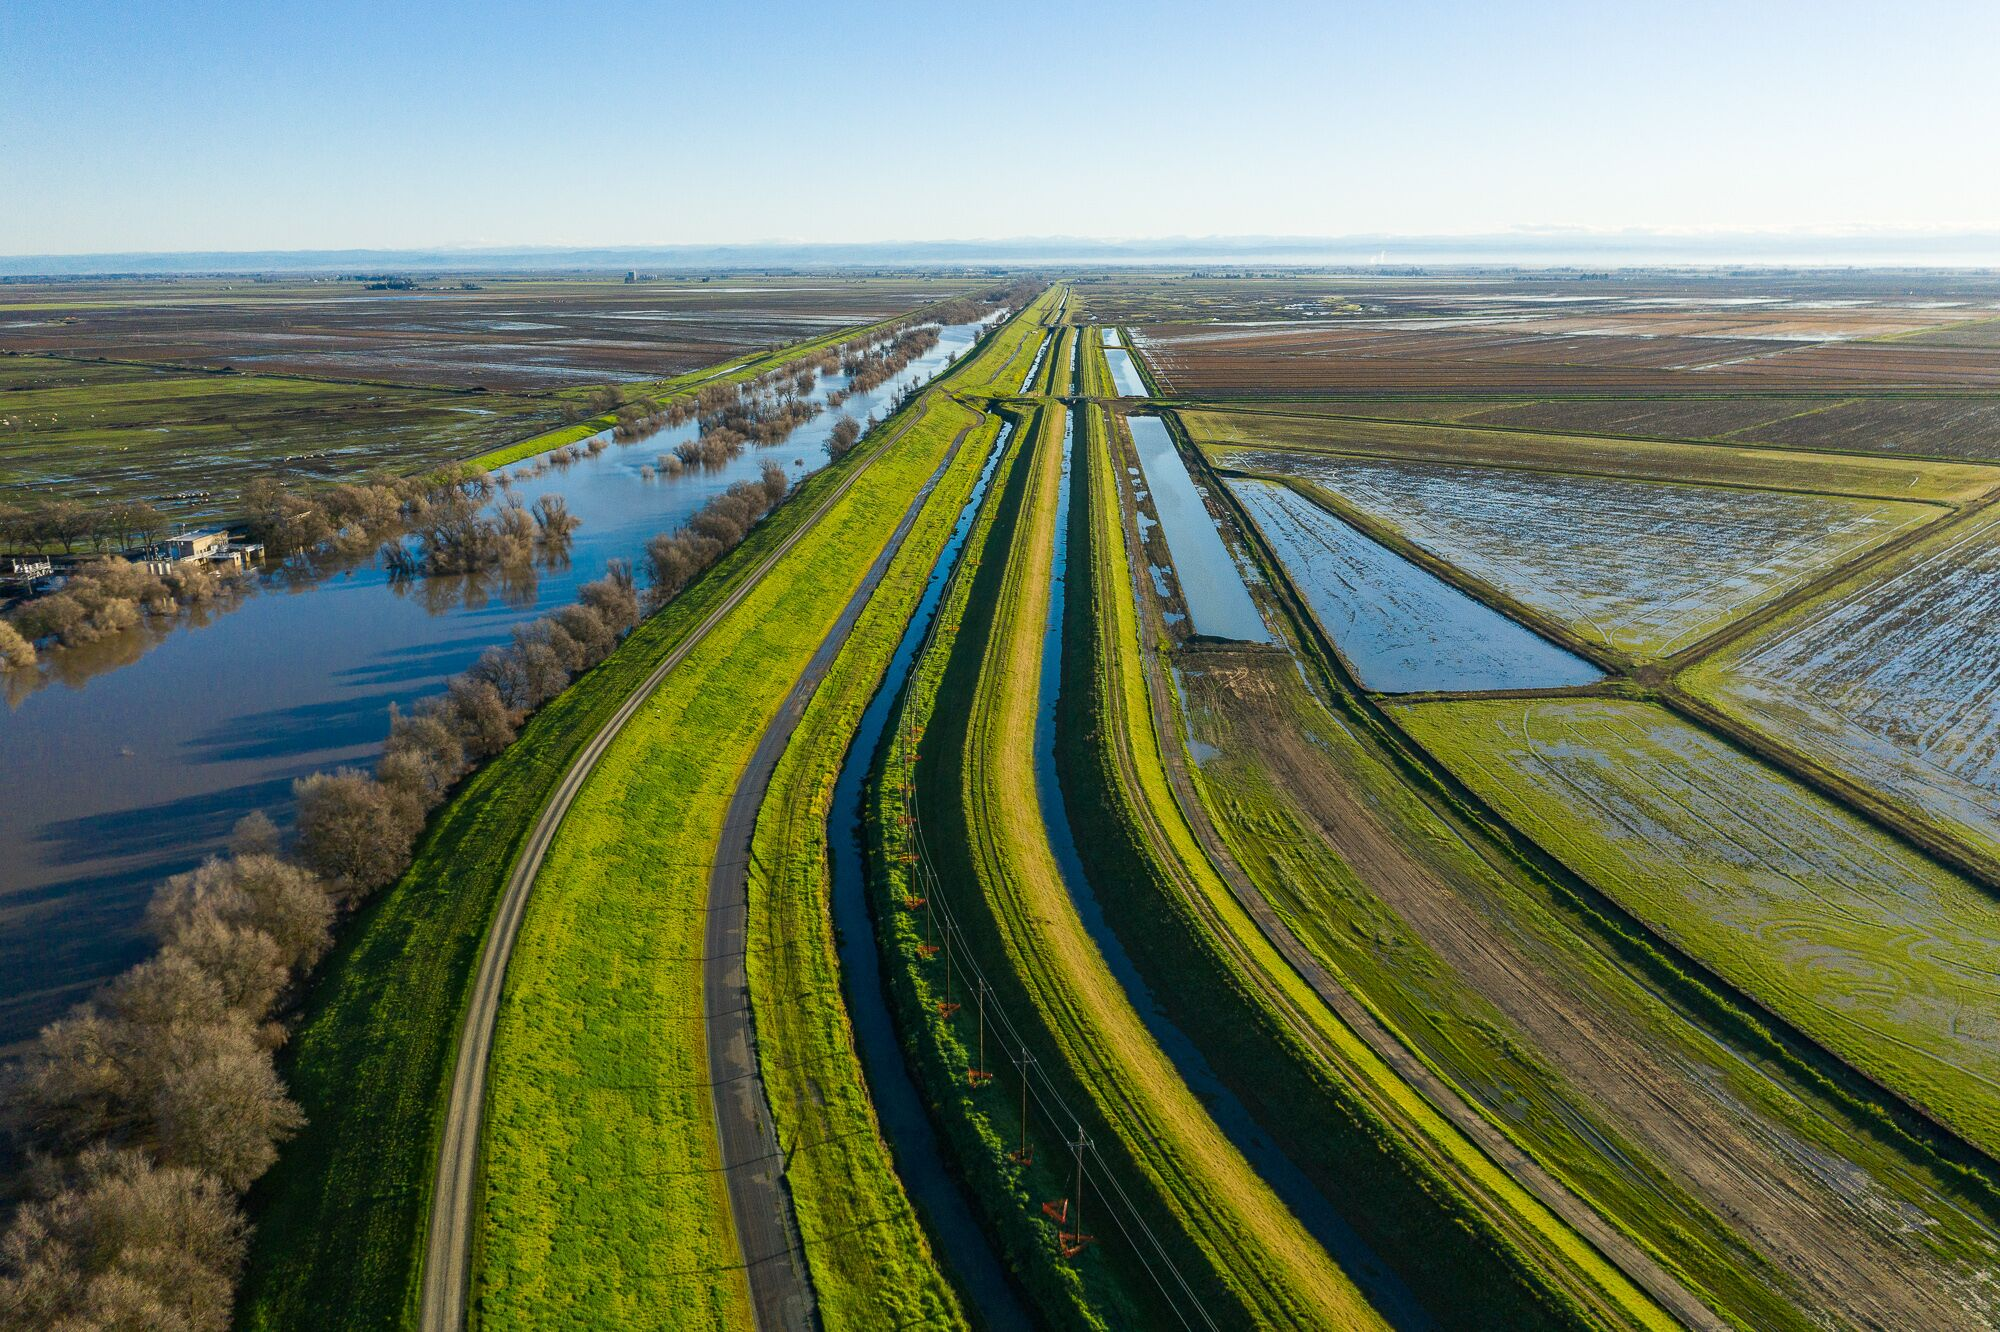 An aerial view of a canal and irrigation system near the Sacramento River illustrates how heavily engineered the landscape has become.